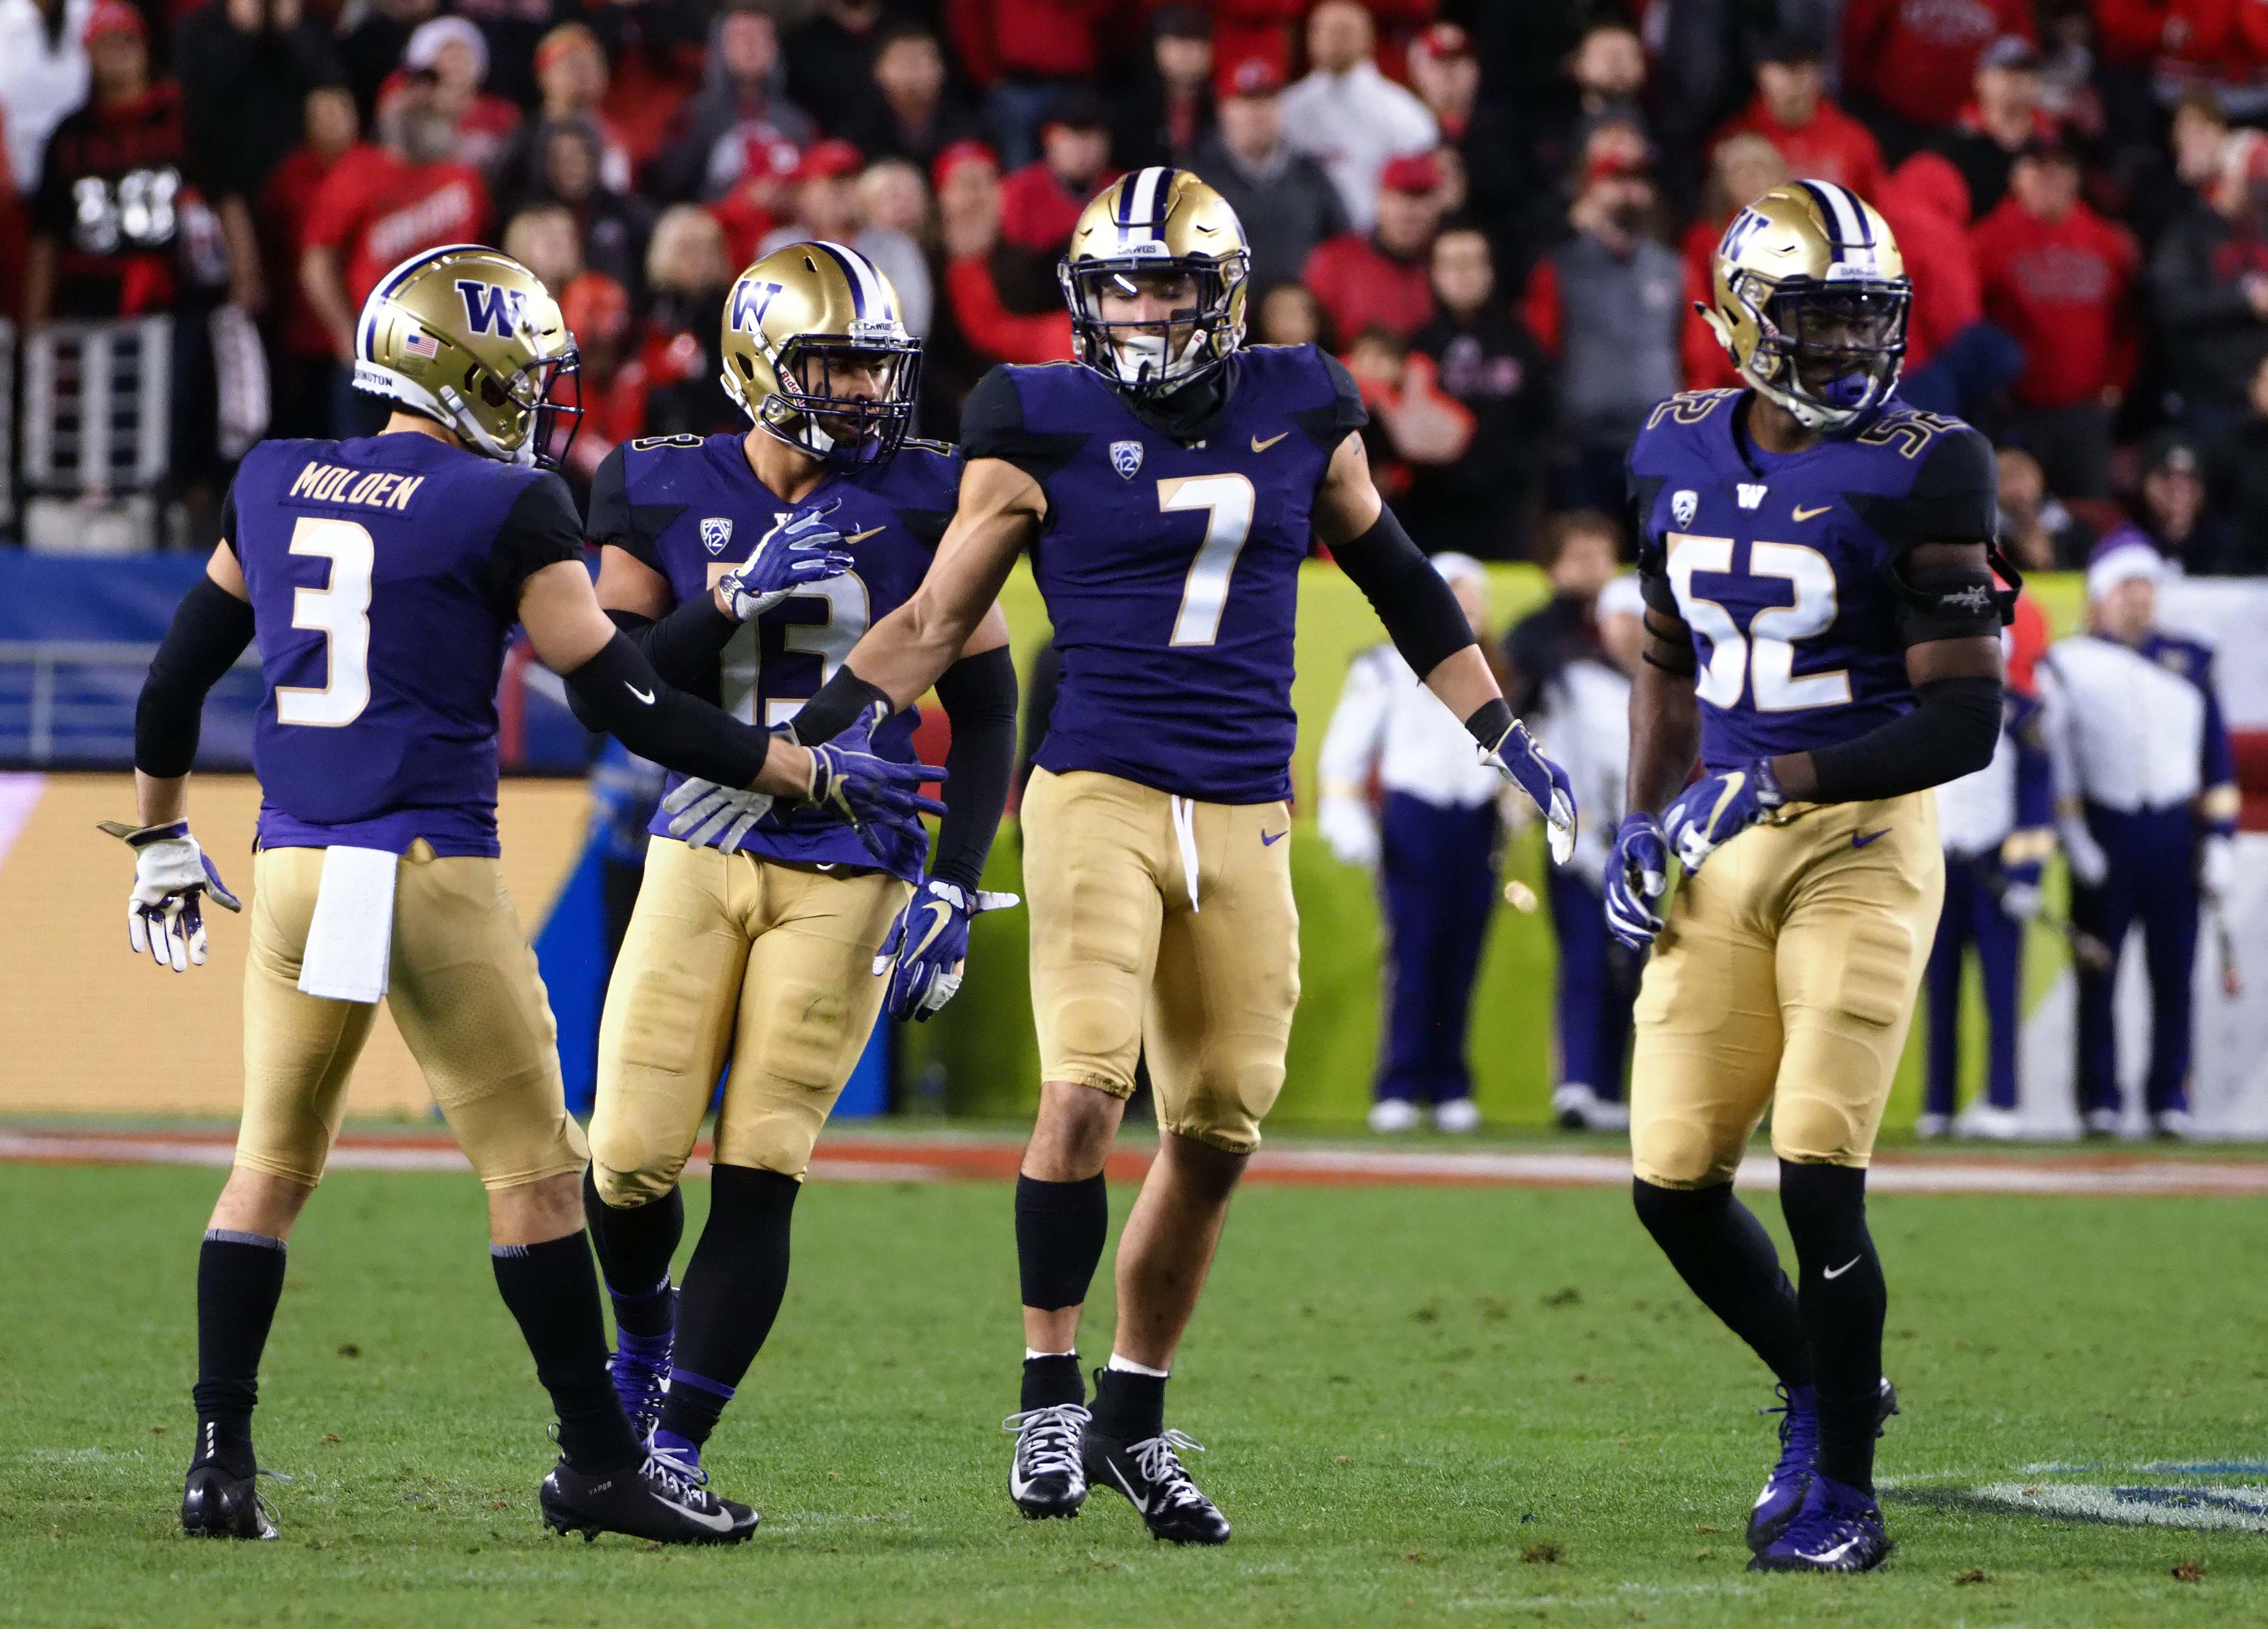 Uw Spring 2020 Time Schedule Recruiting Roundup: a Spring Look at the 2020 Defensive Recruiting